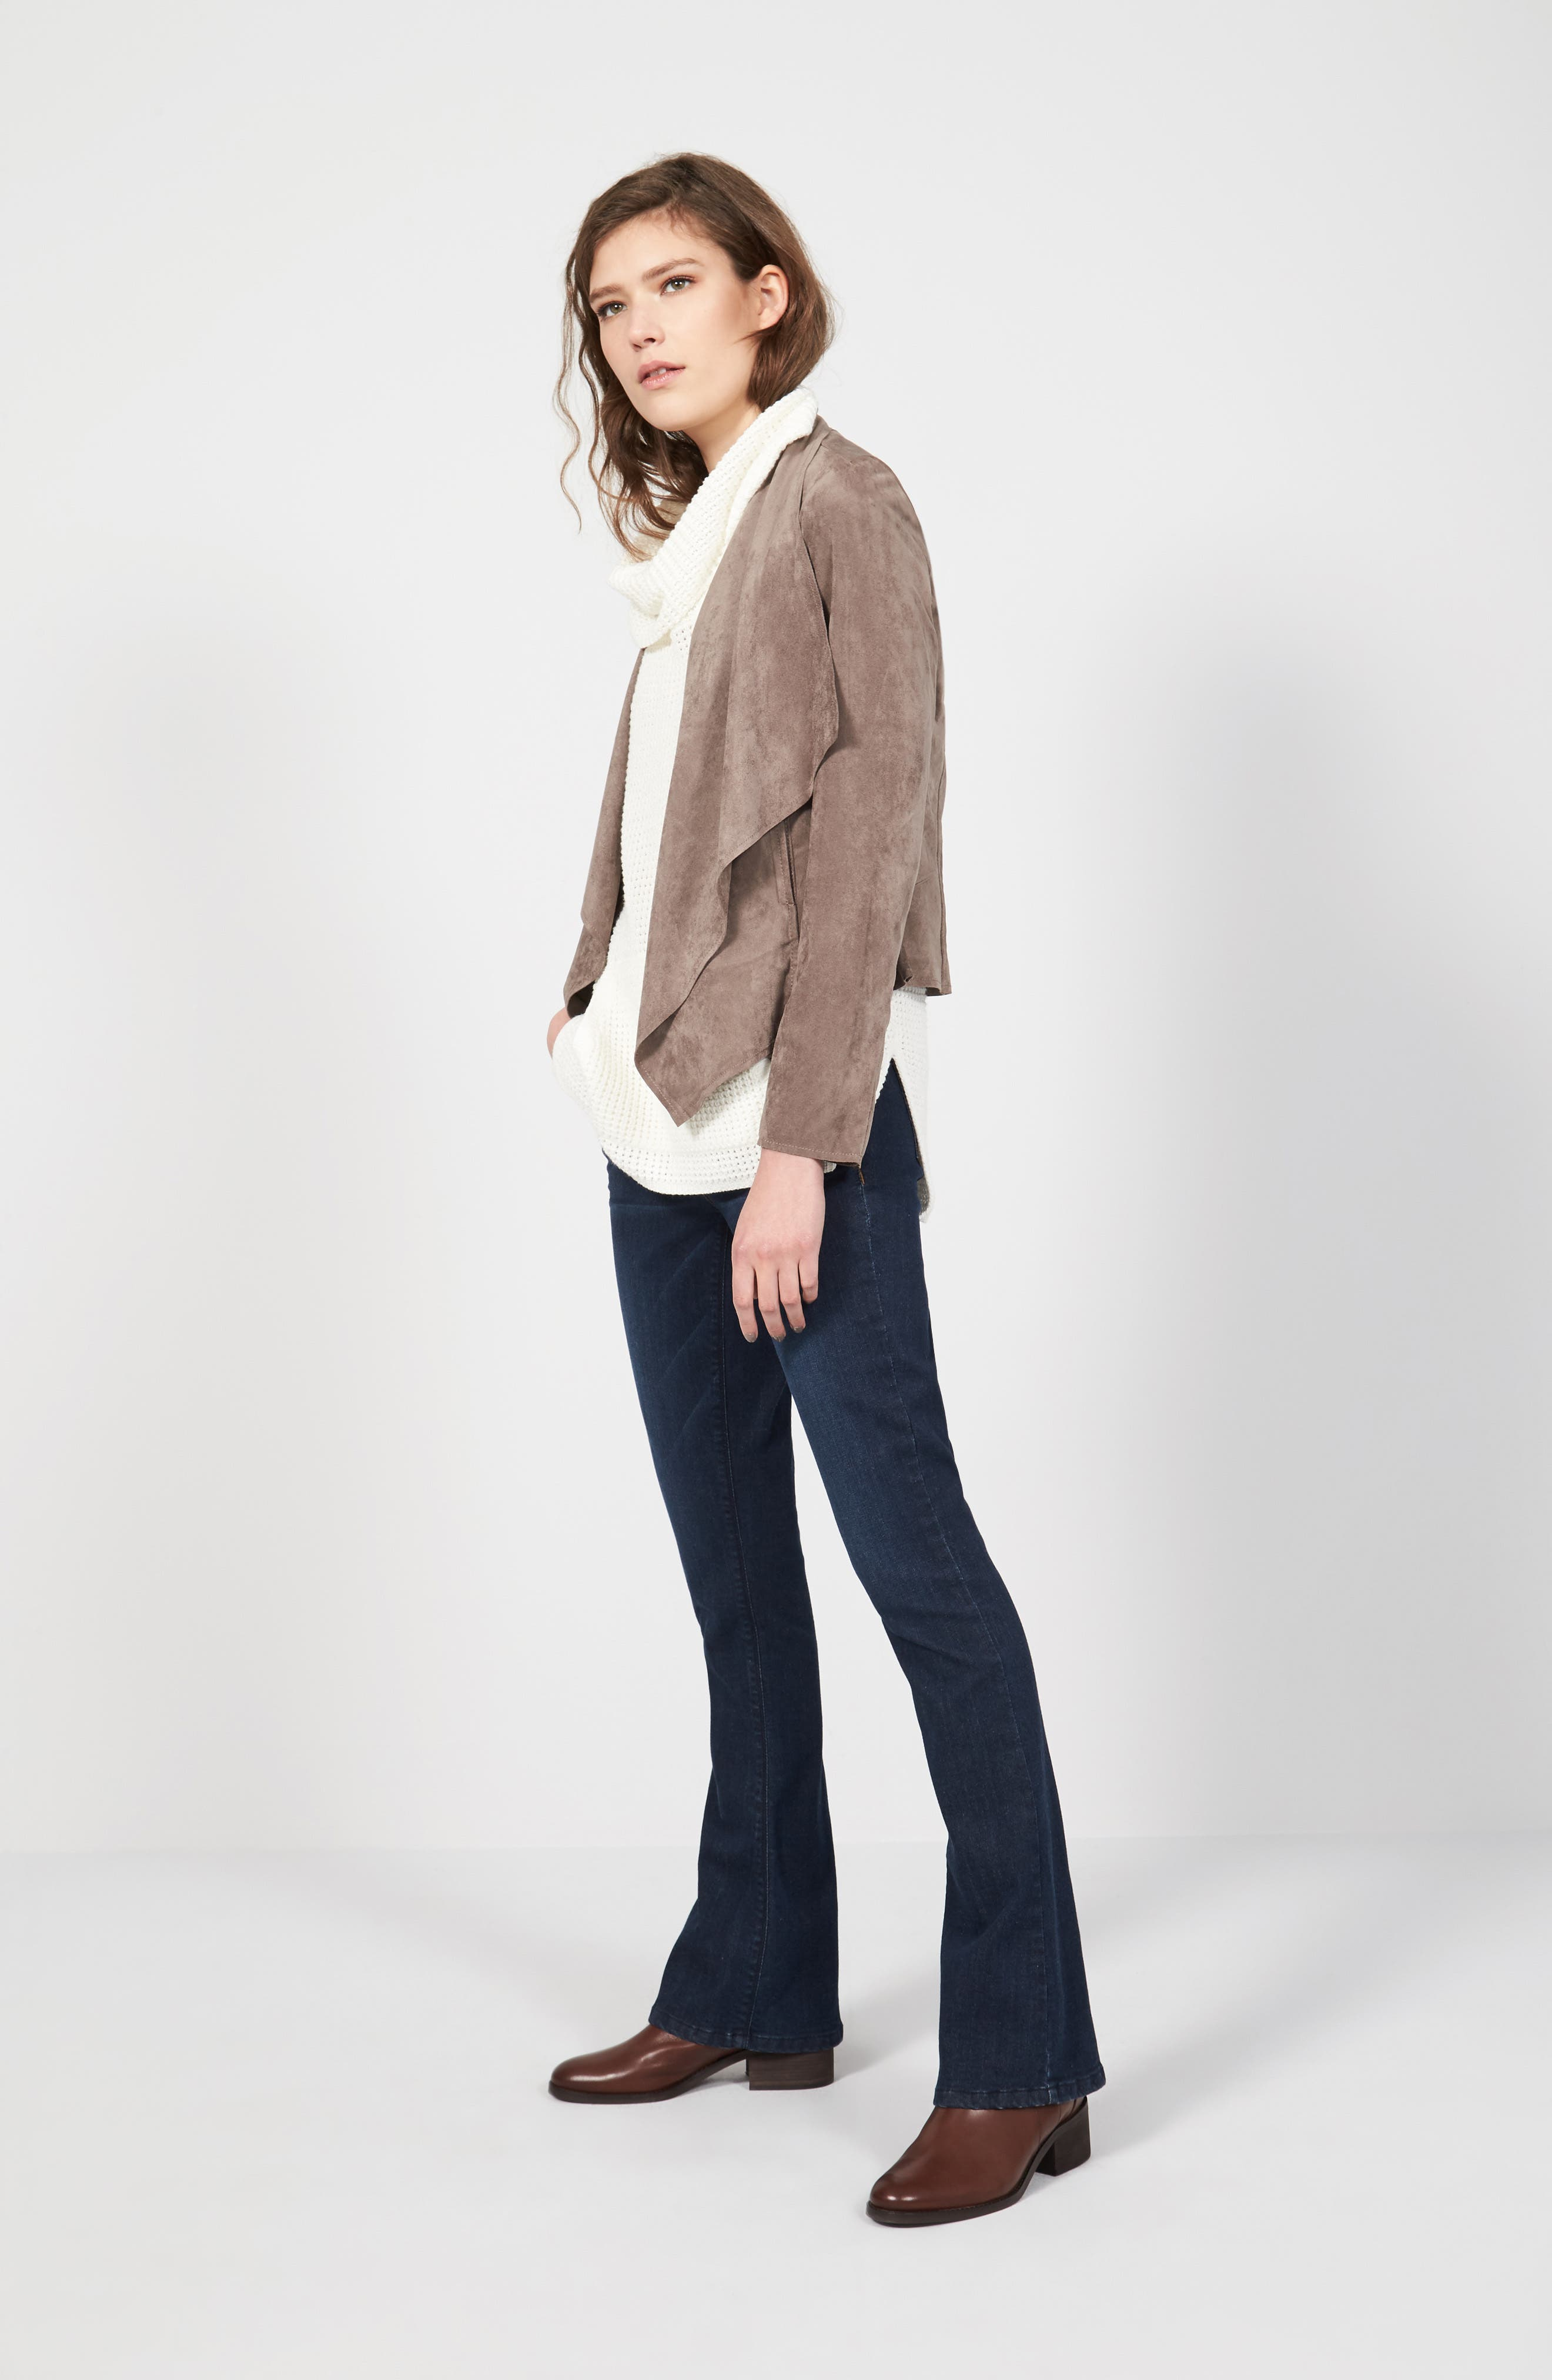 KUT from the Kloth Jacket, Two by Vince Camuto Vest & Wit & Wisdom Jeans Outfit with Accessories